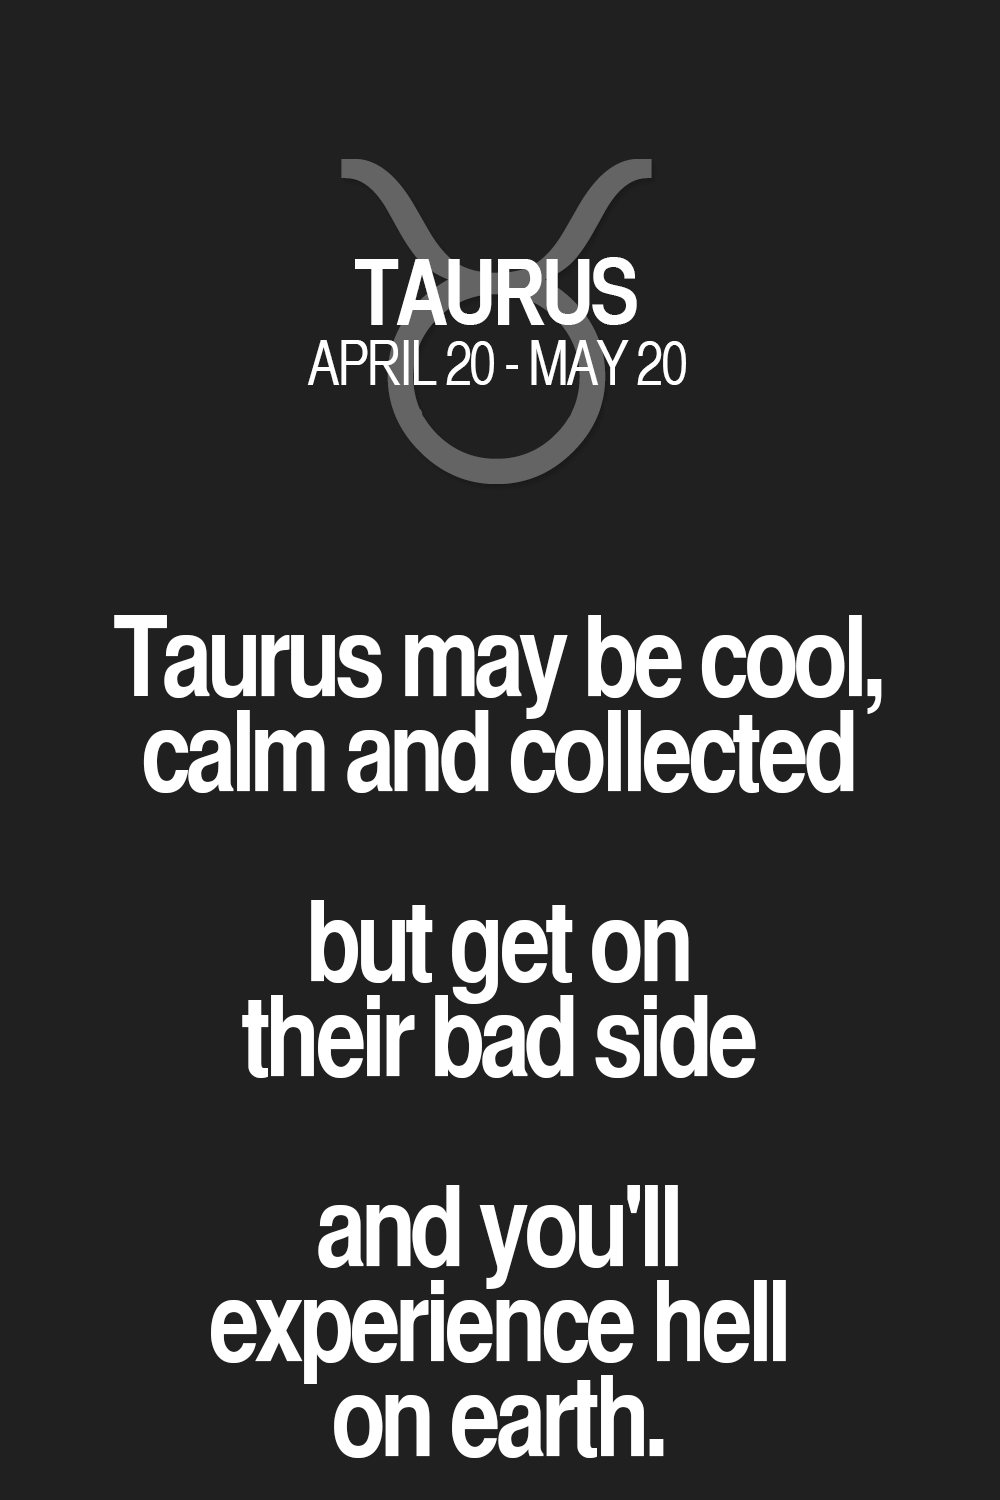 Taurus May Be Cool Calm And Collected But Get On Their Bad Side And